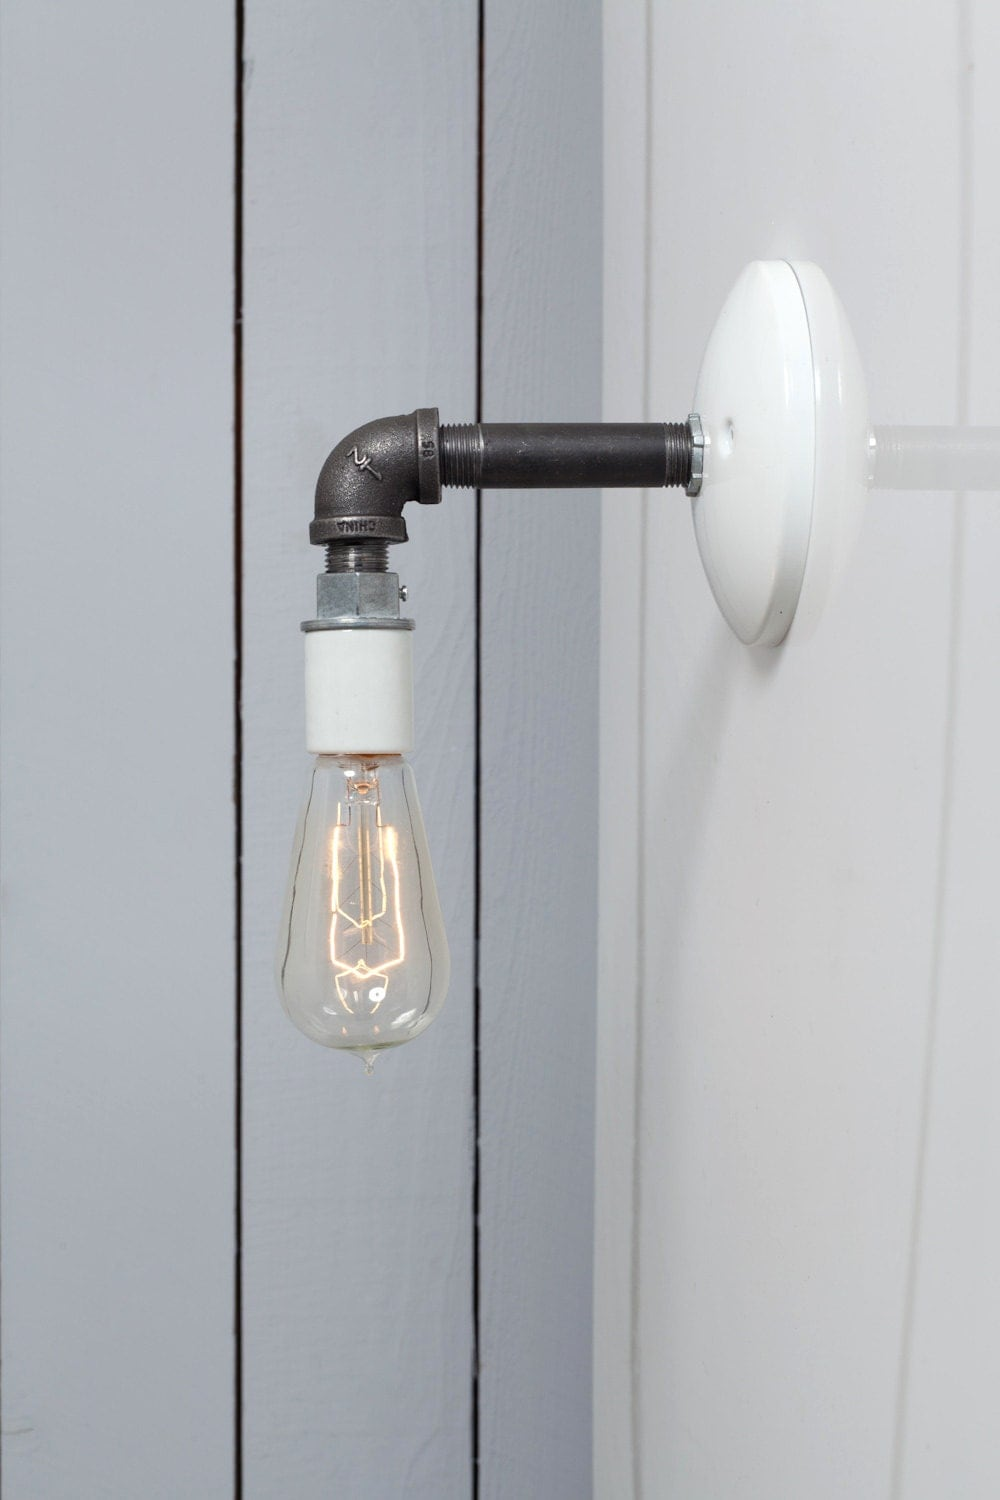 Industrial Pipe Wall Lights : Industrial Wall Sconce Black Pipe Light Bare Bulb Lamp